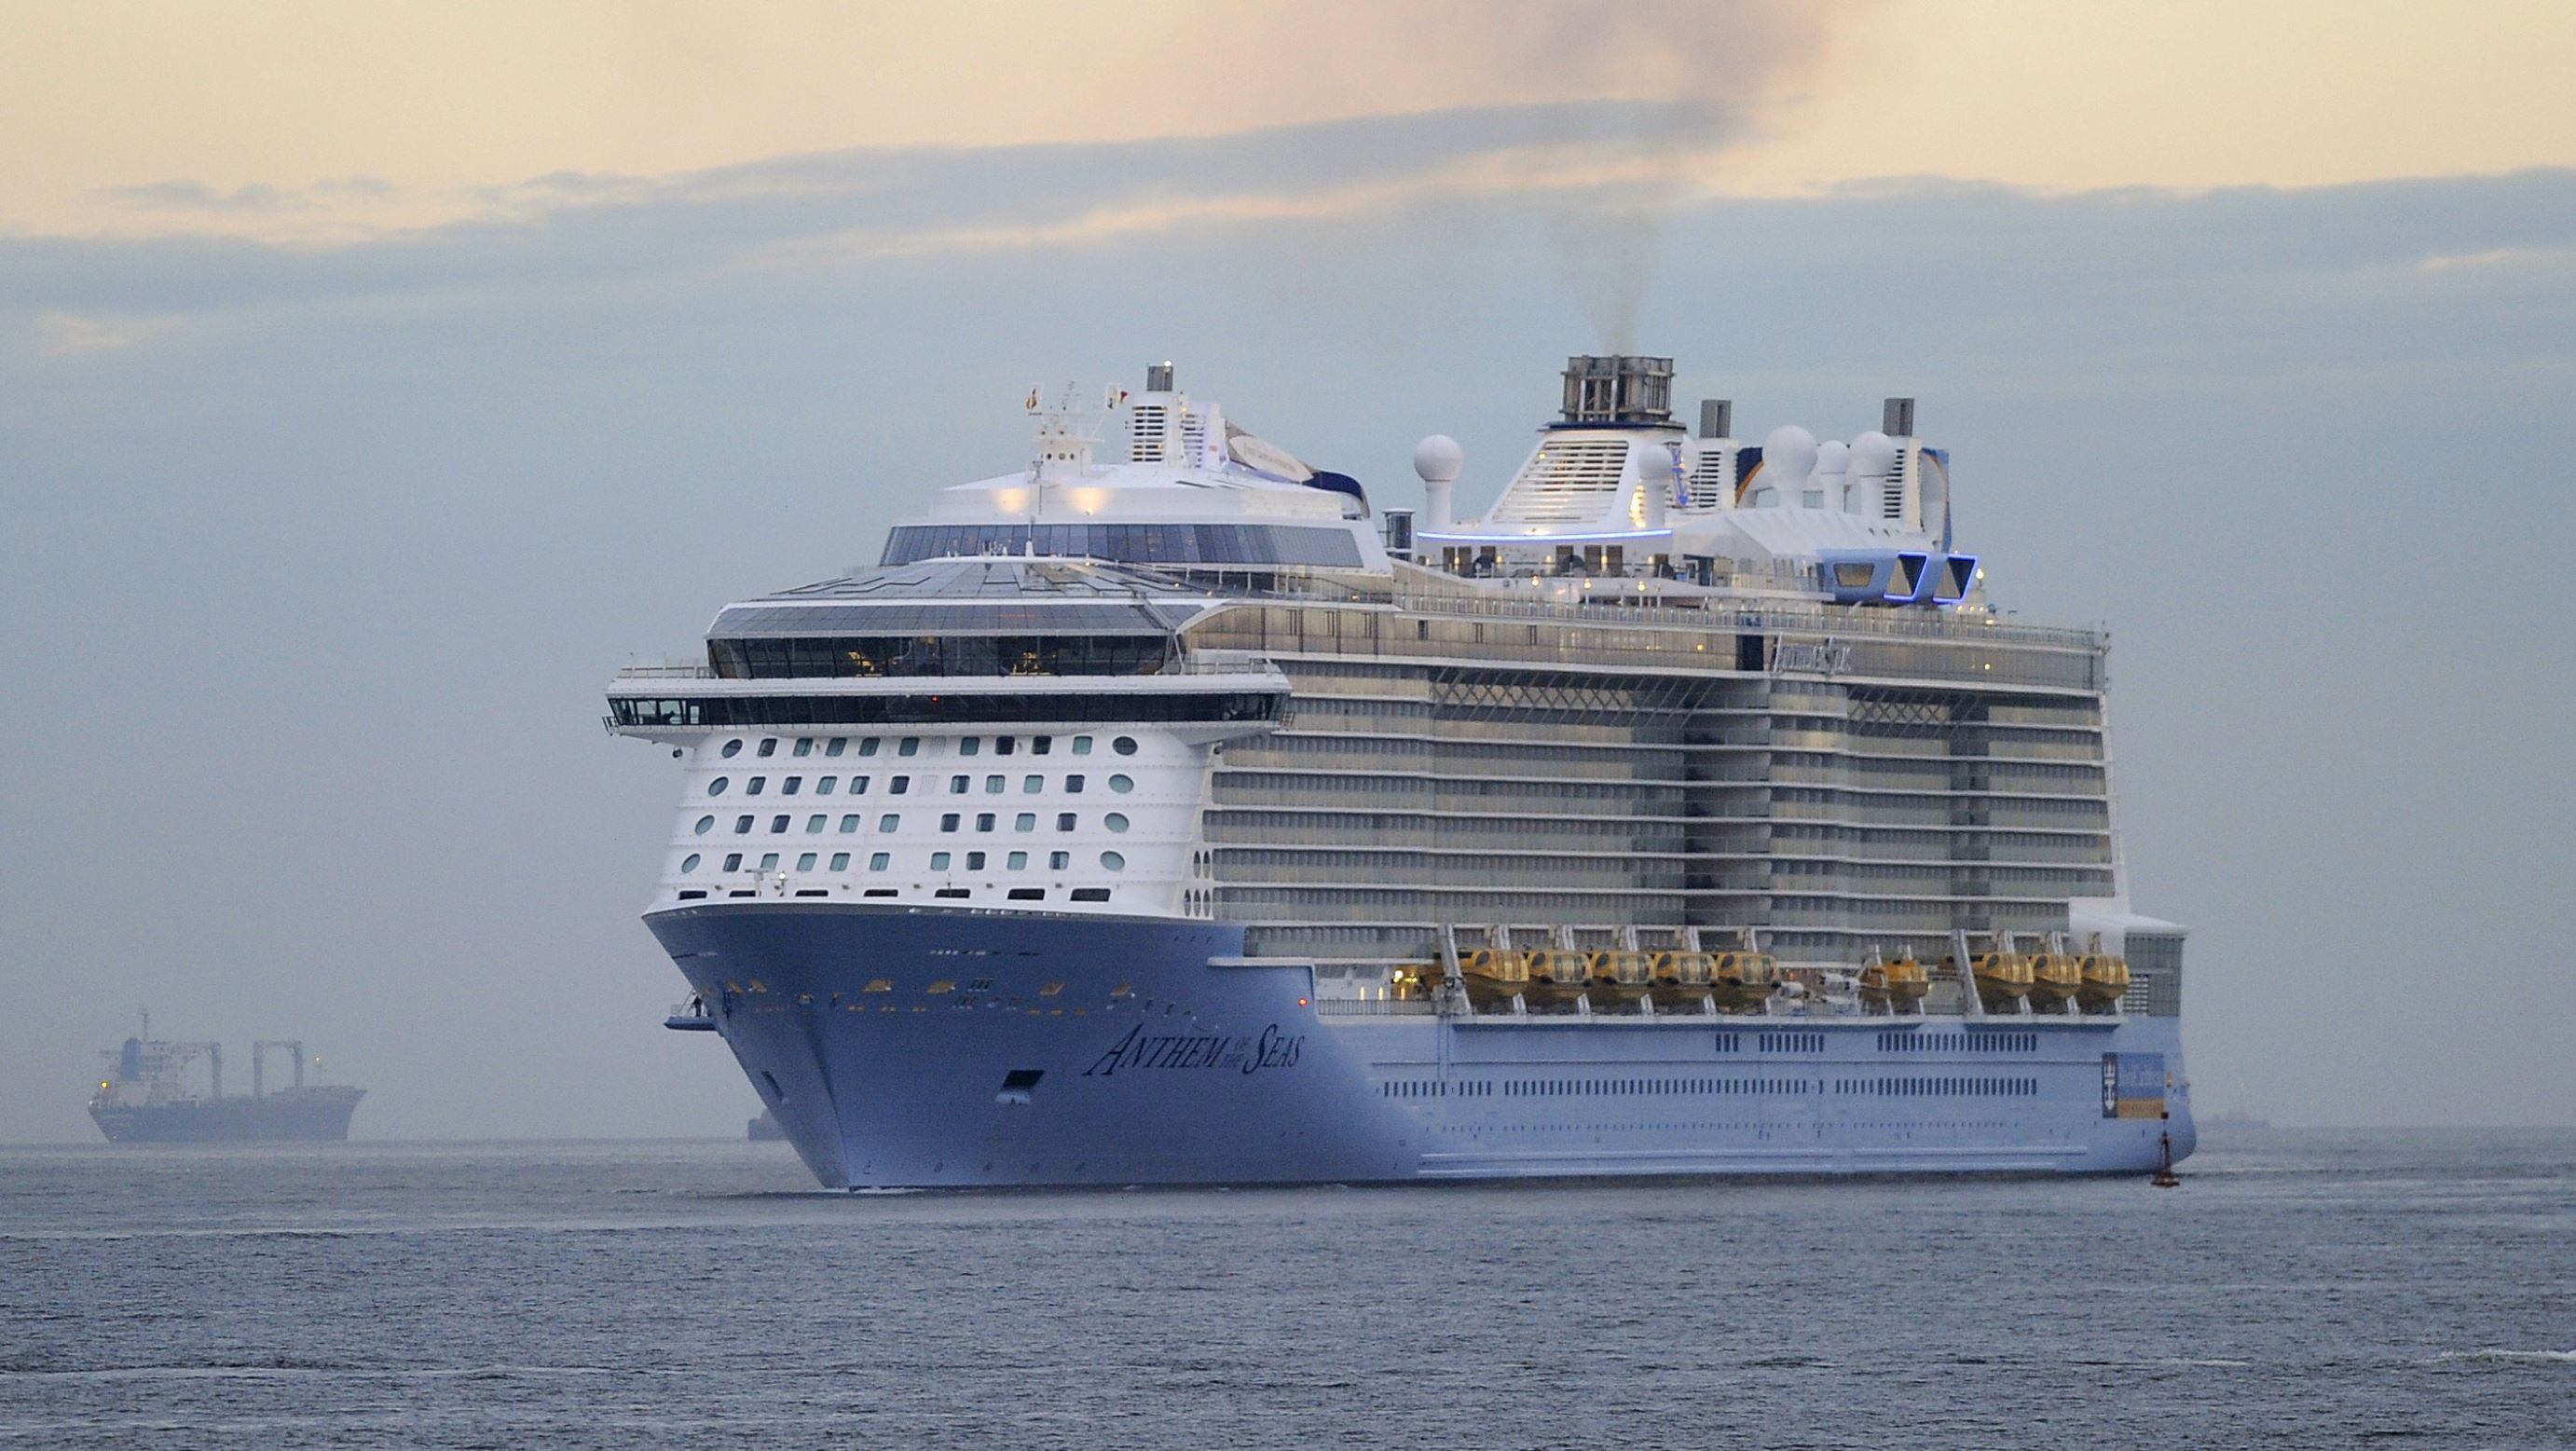 Us Cruise Ship That Was Damaged In Storm Turns Around Again - Cruise ship damaged